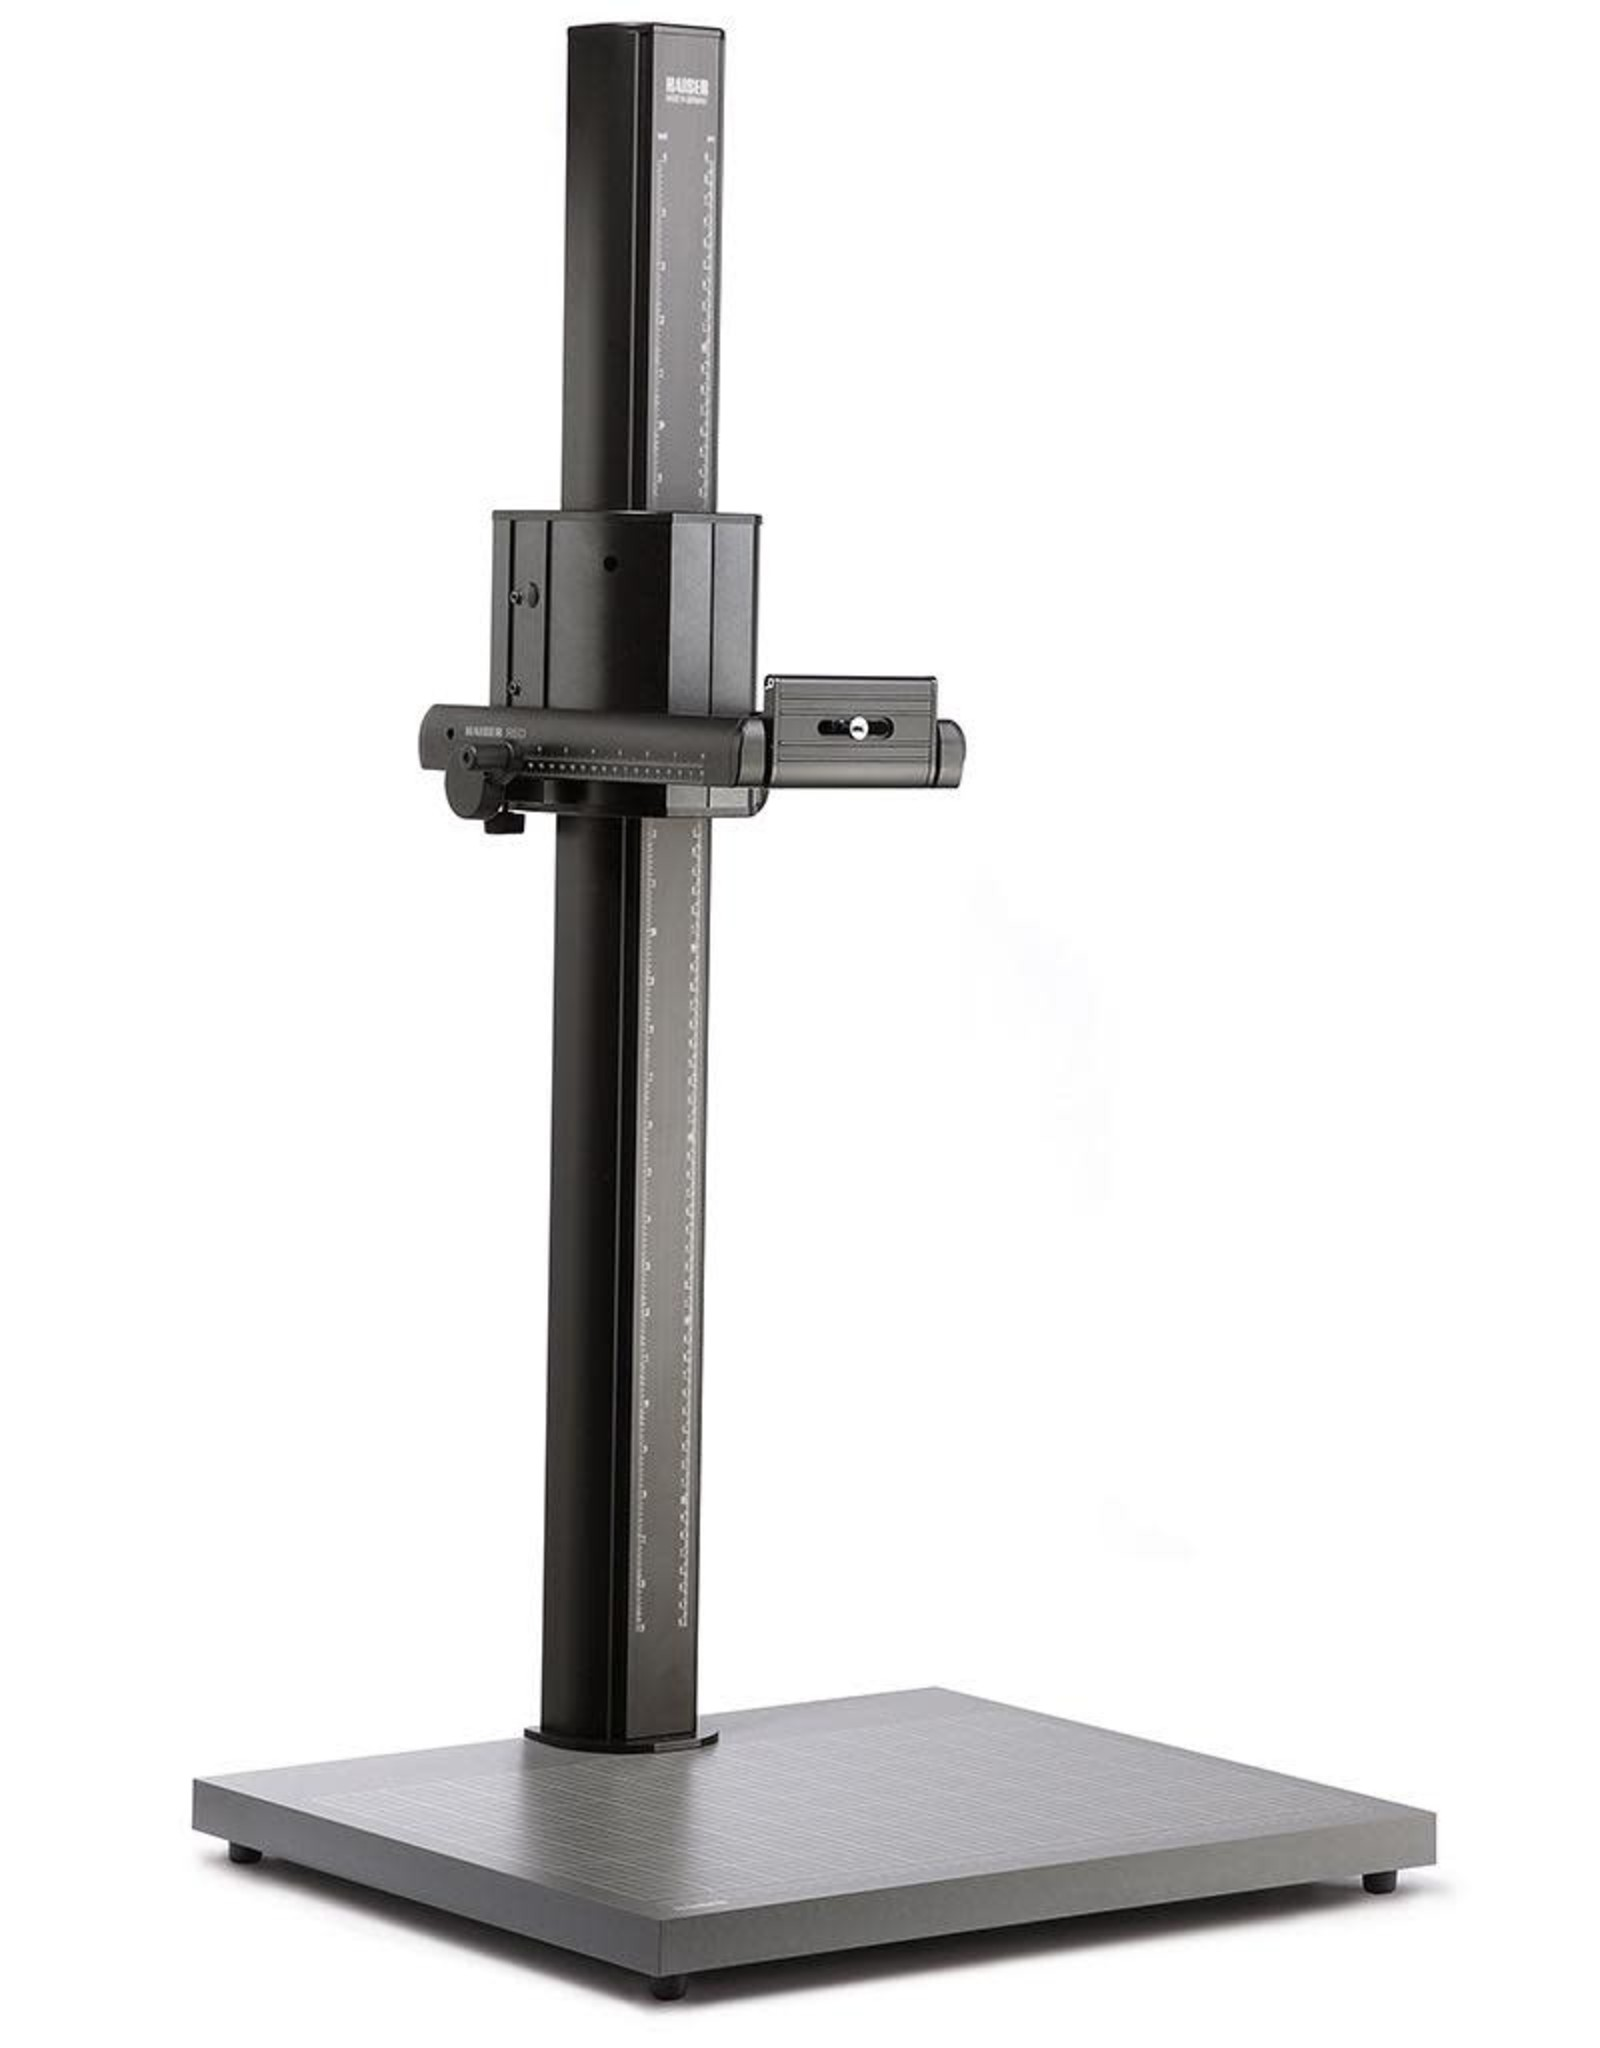 Kaiser Kaiser RSD mot Copy Stand, Base Plate (WxHxD): 680 x 38 x 570 mm (26.8 x 1.5 x 22.4 in.), Height of column: 1.20 m (3.9 ft.), Loading capacity: 8 kg (17.6 lbs.). Hight adjustment motorized, with two speeds.